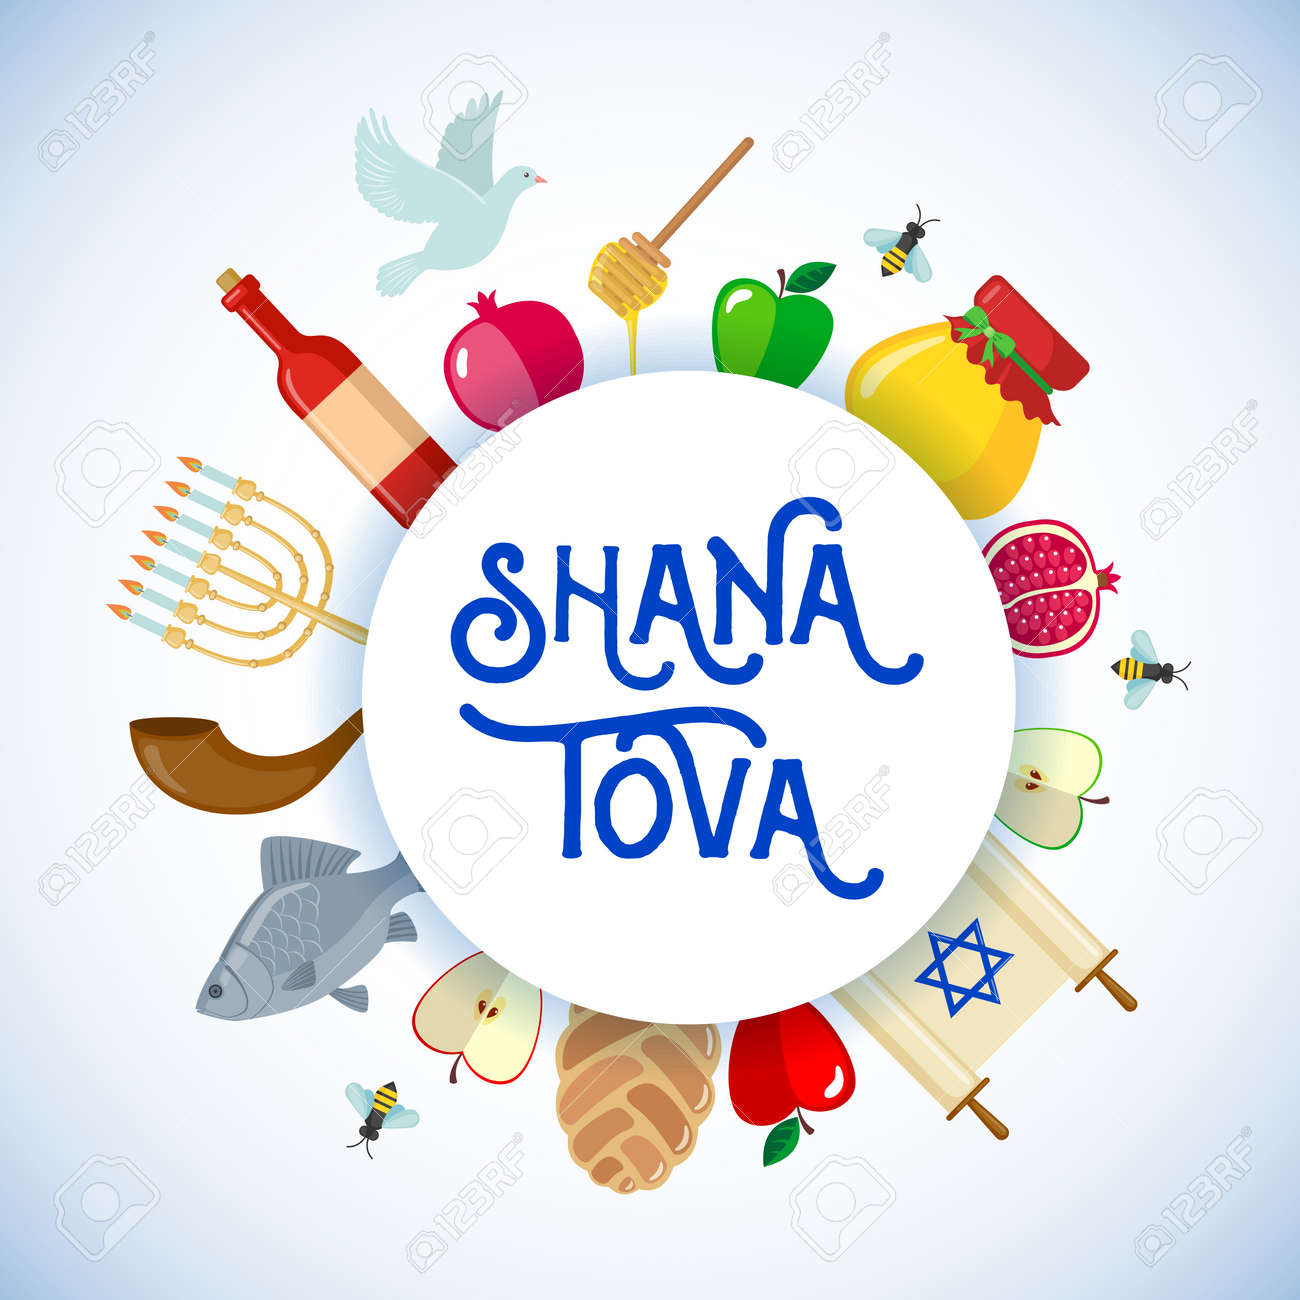 Rosh Hashanah Greeting Card In Flat Style Shana Tova Or Jewish